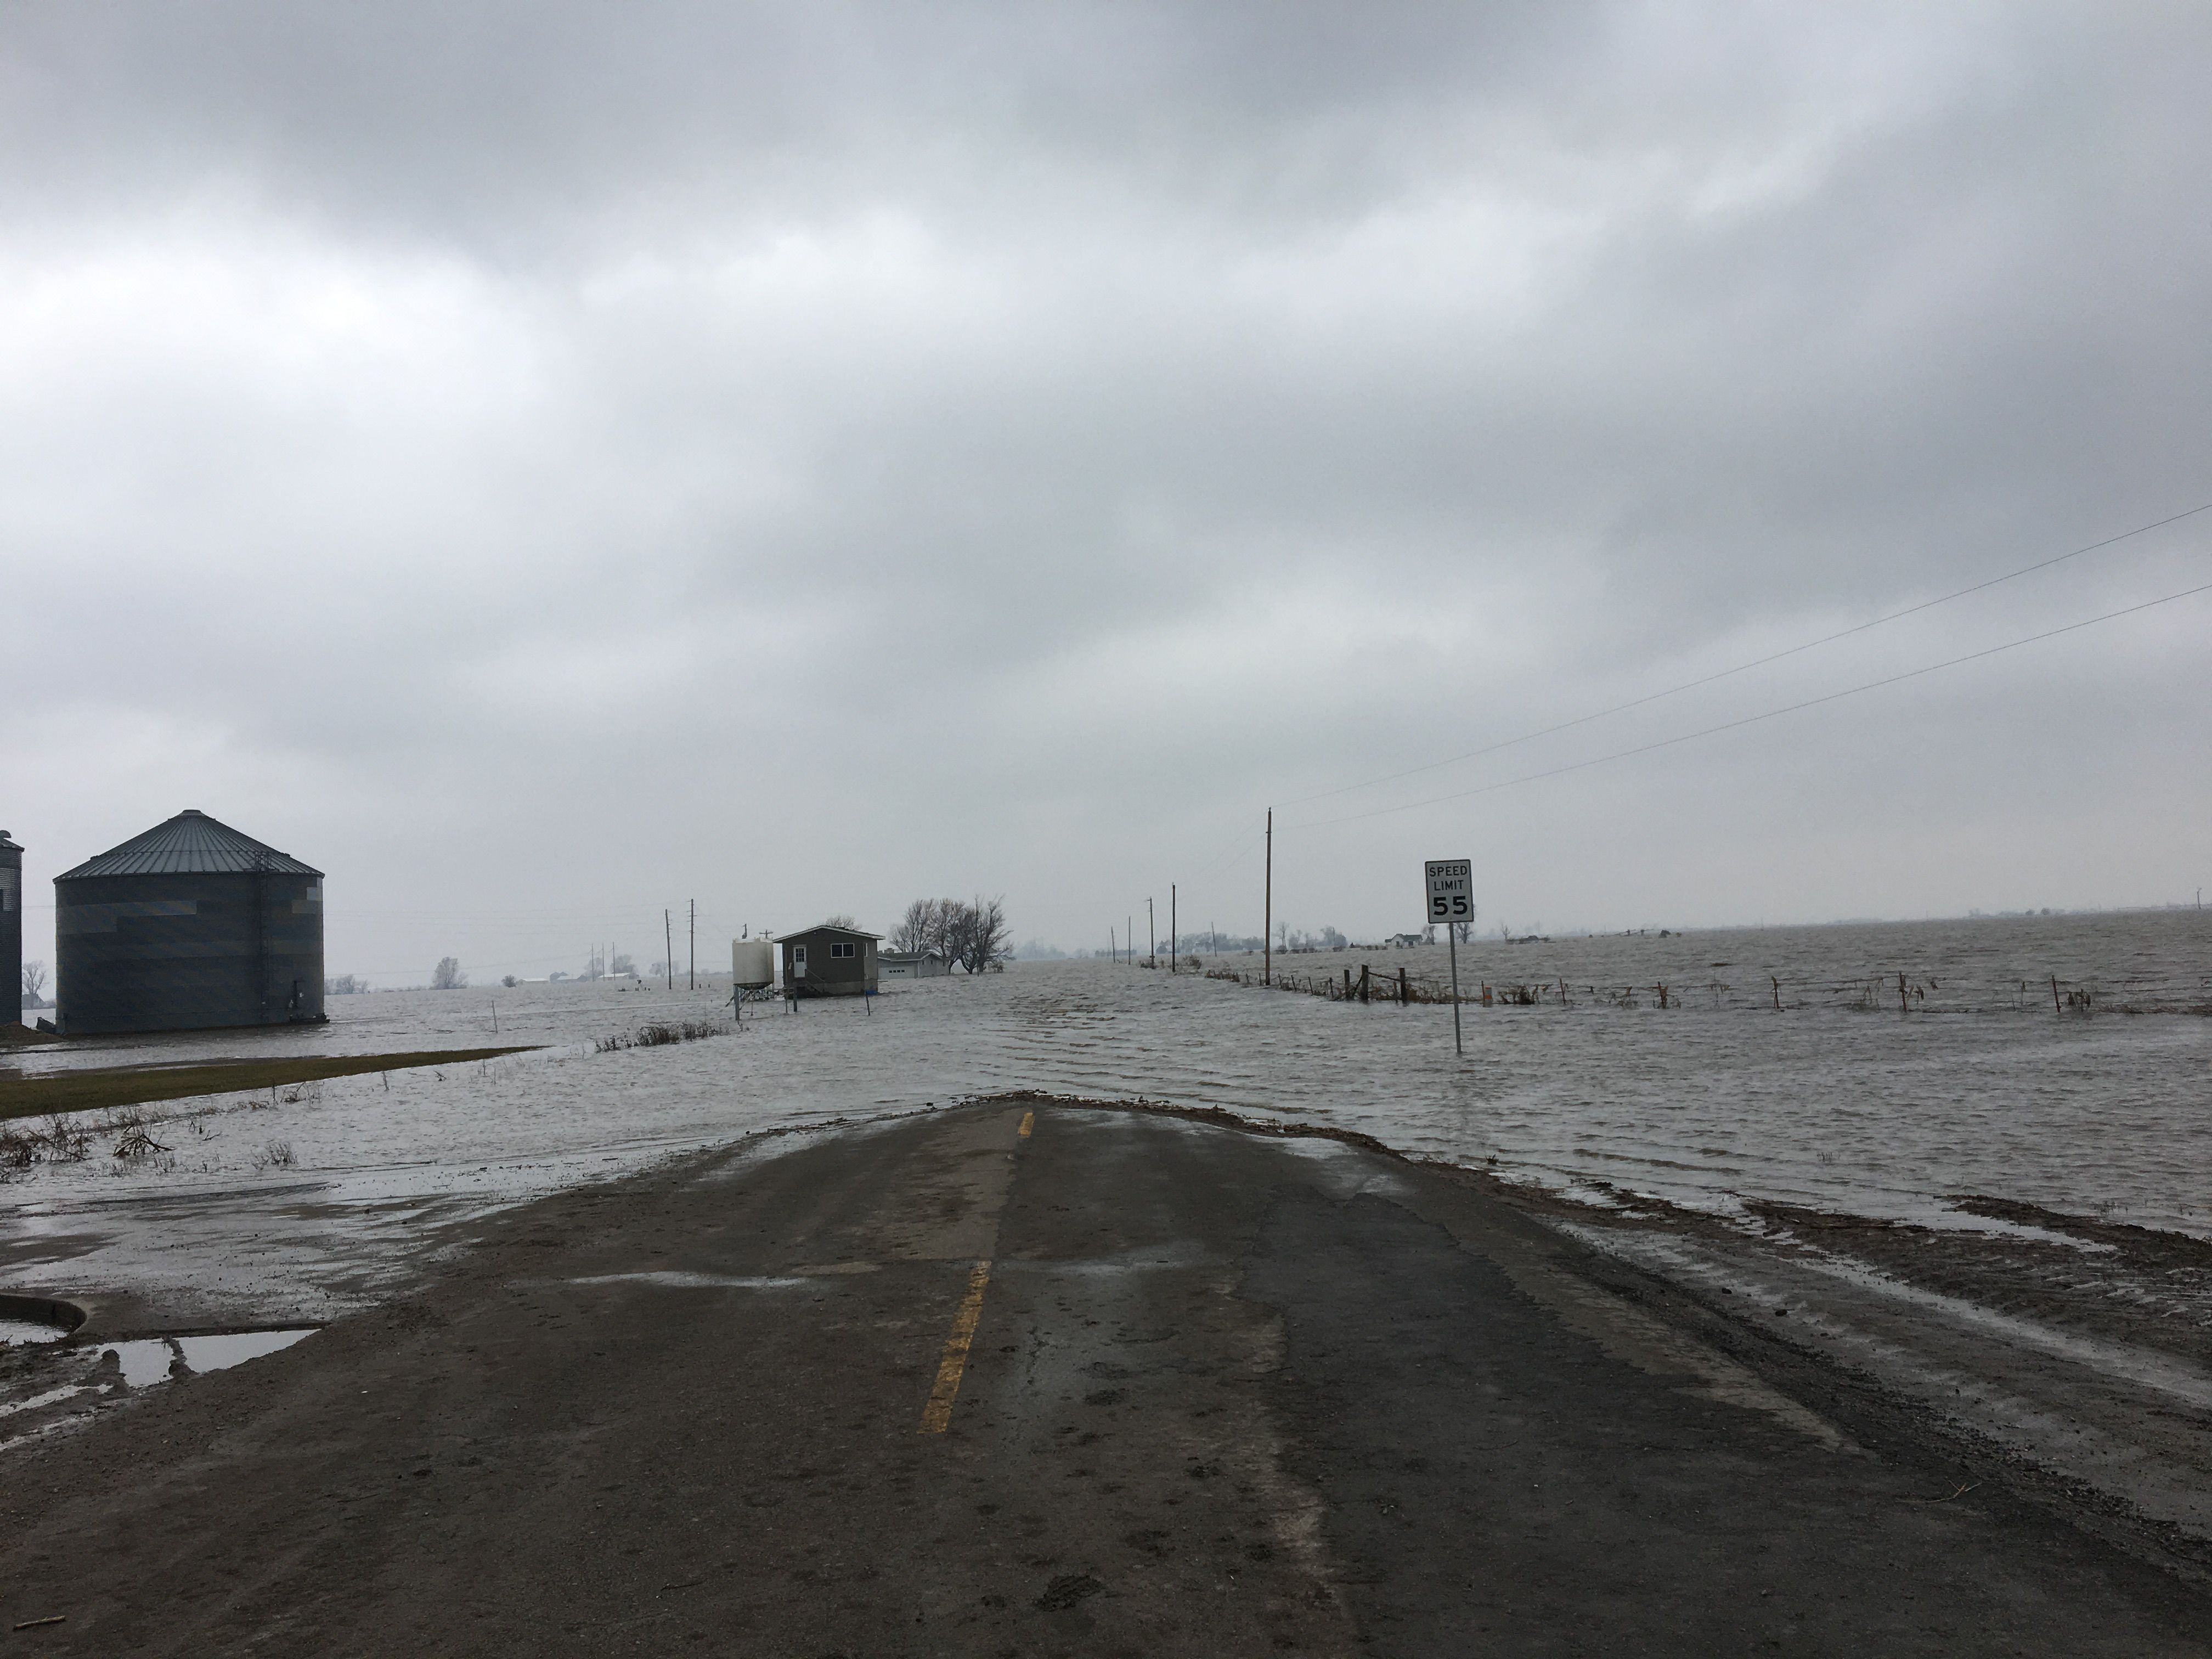 Water flooded over road and farm buildings.